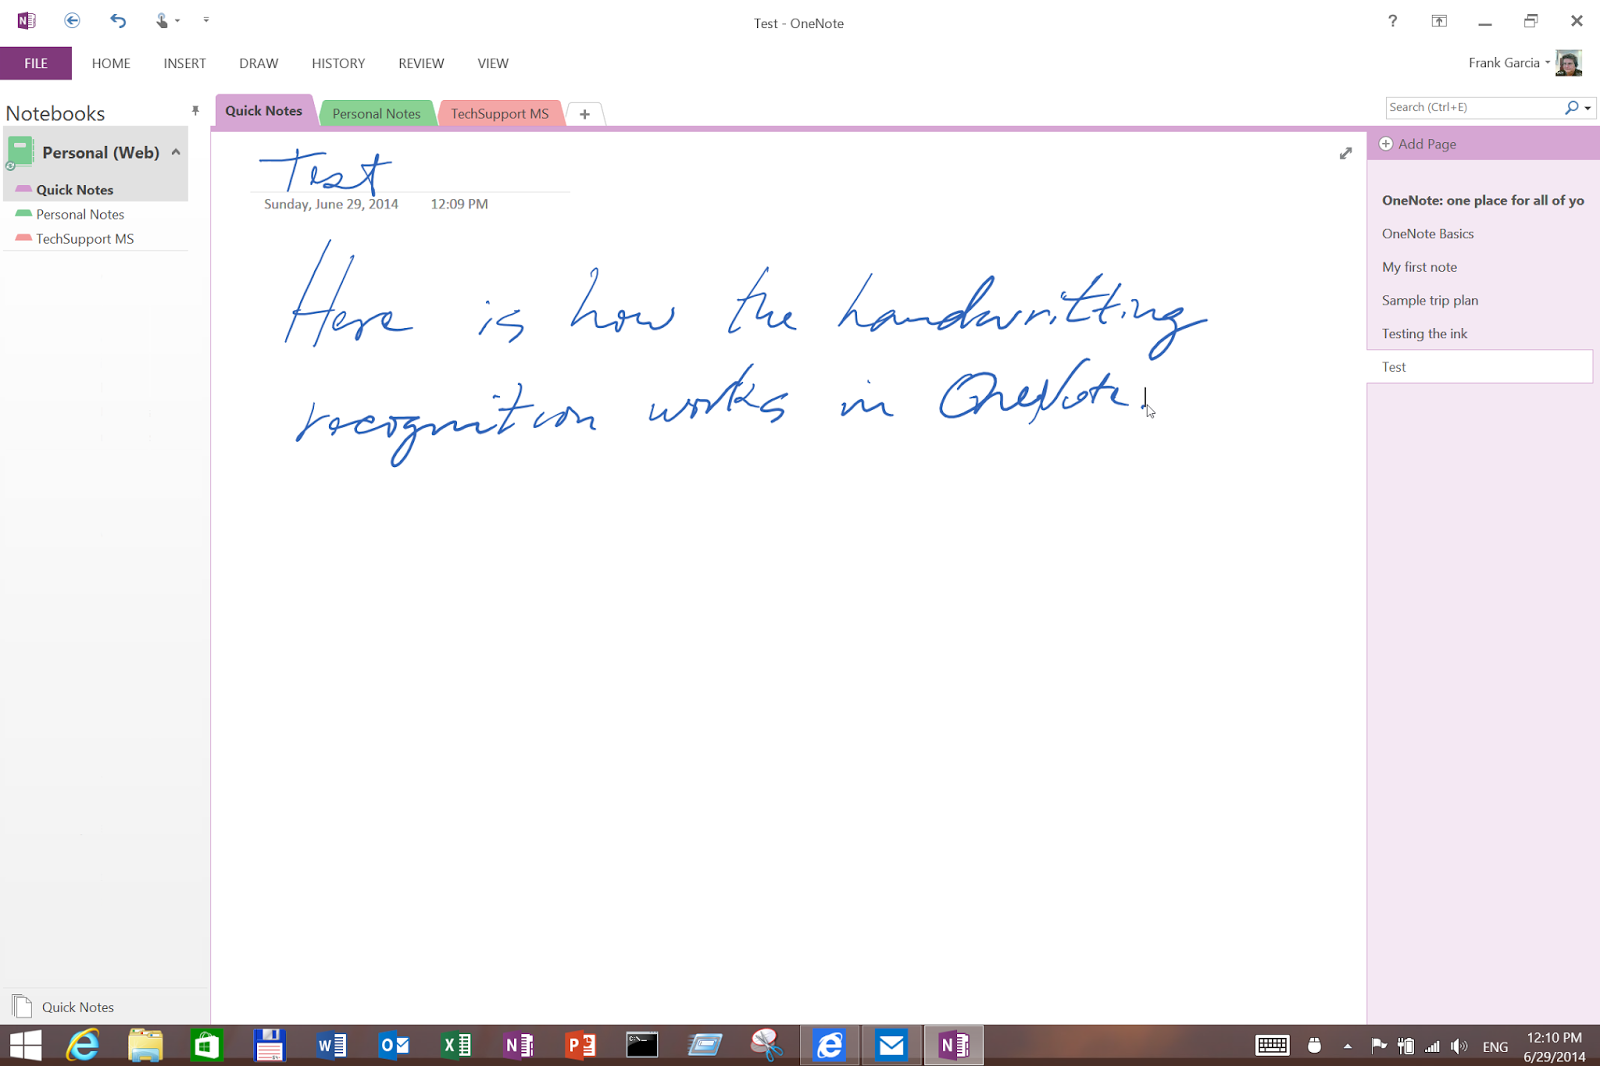 onenote how to use tuchsreecn to draw